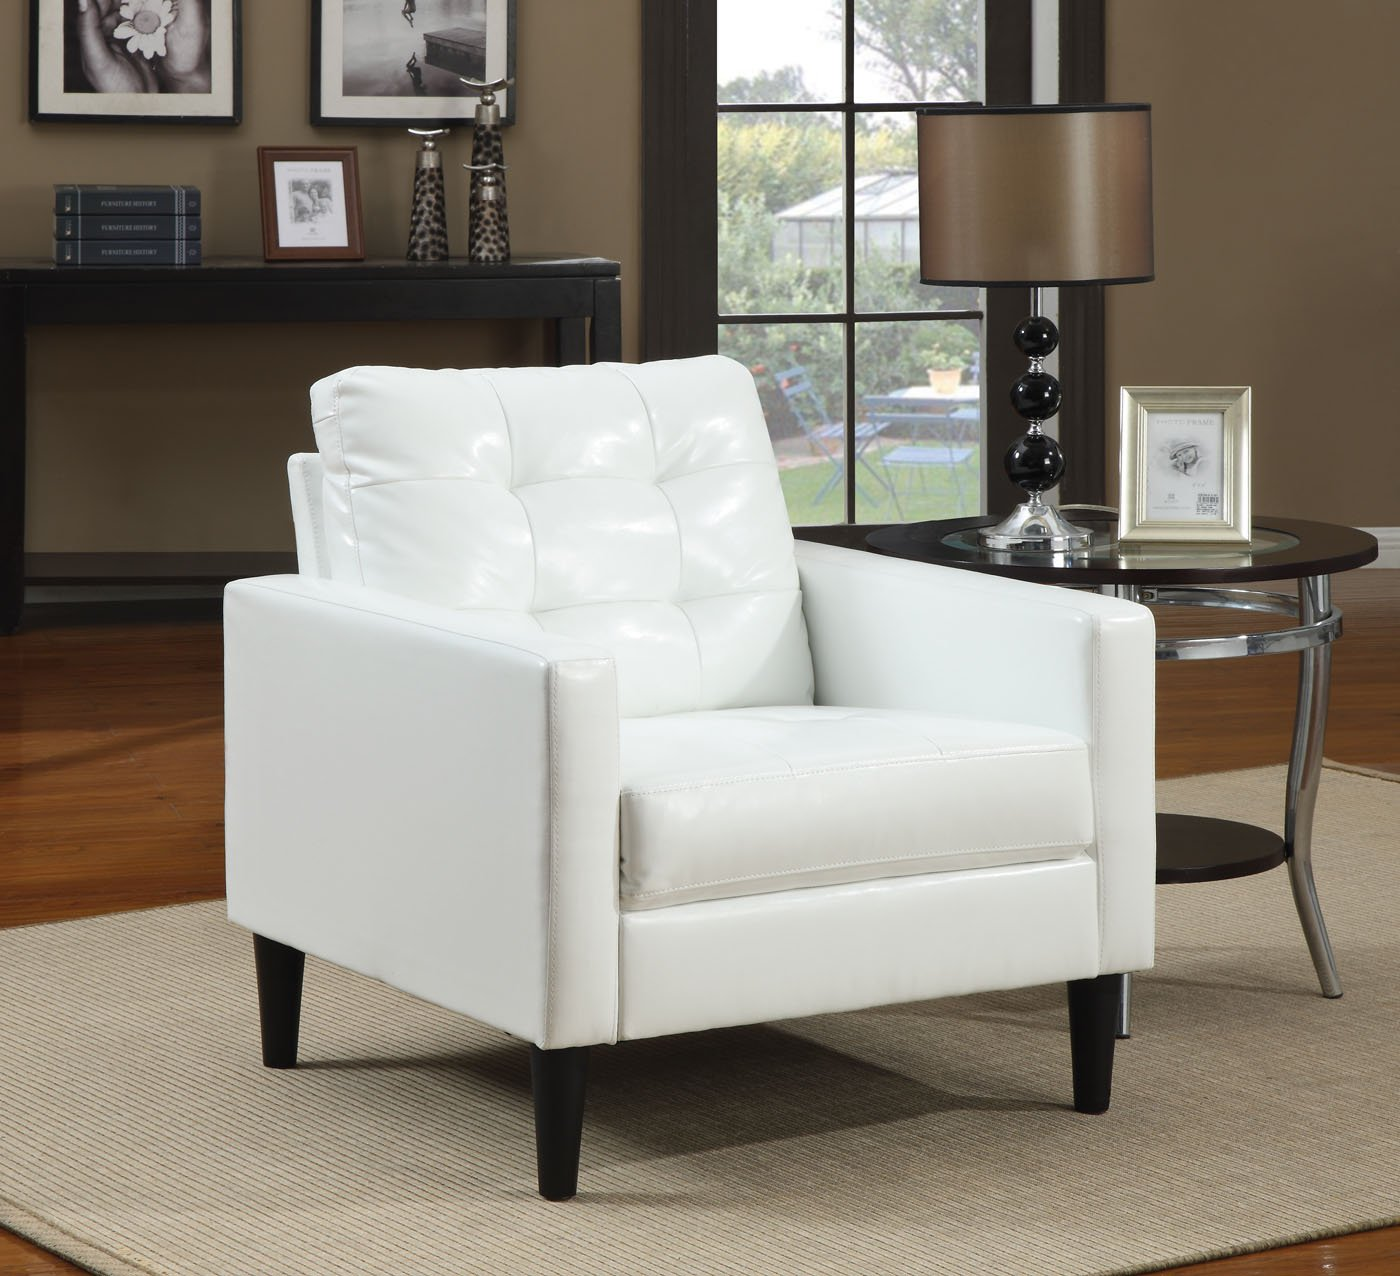 Amazon.com: ACME Balin White Faux Leather Accent Chair: Kitchen U0026 Dining Part 59